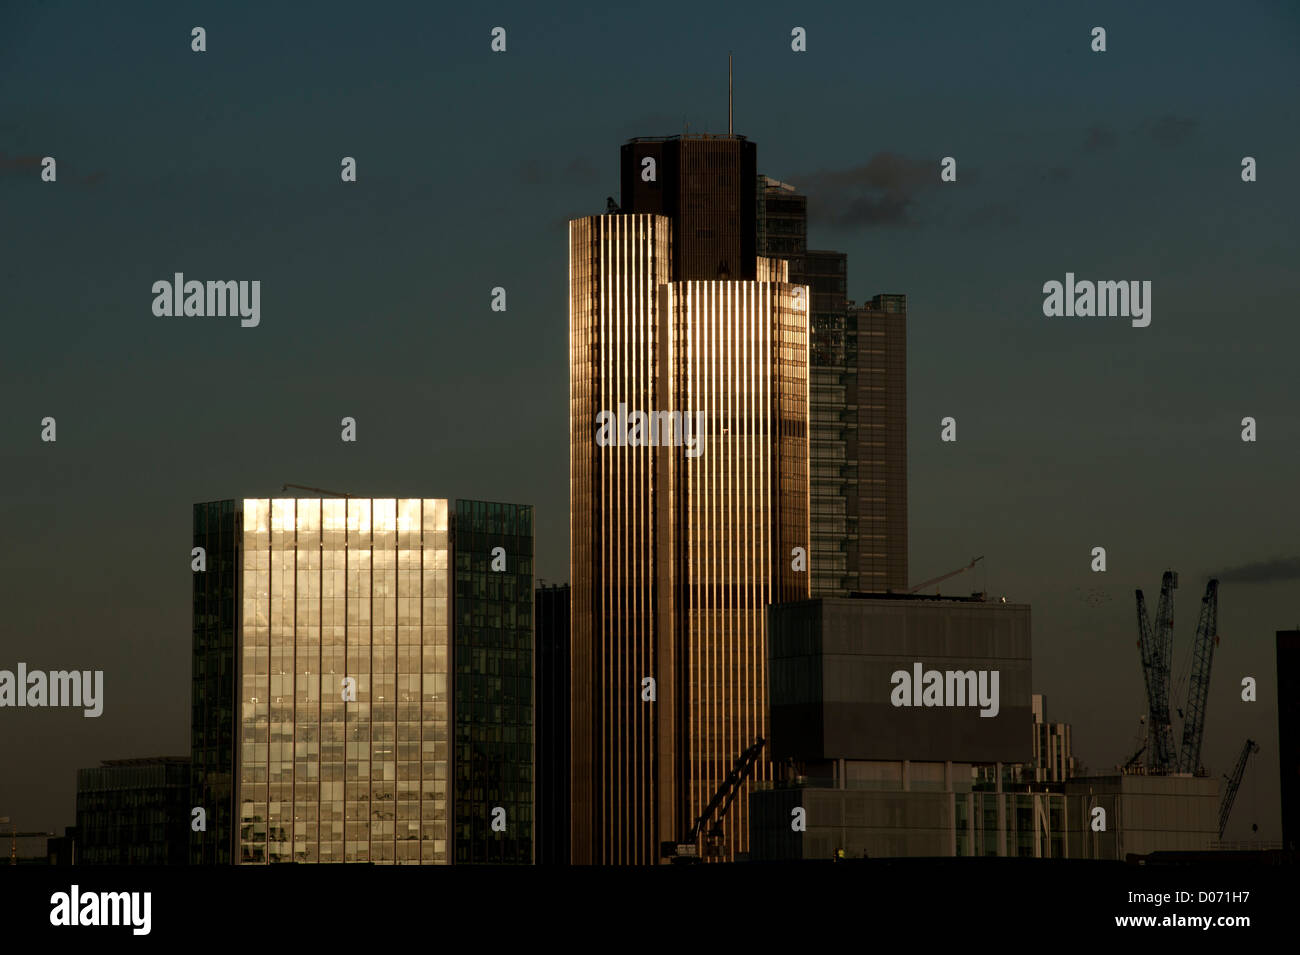 City of London showing Tower 42, London, England, UK. BRIAN HARRIS © 11-2012 Tower 42 - Stock Image